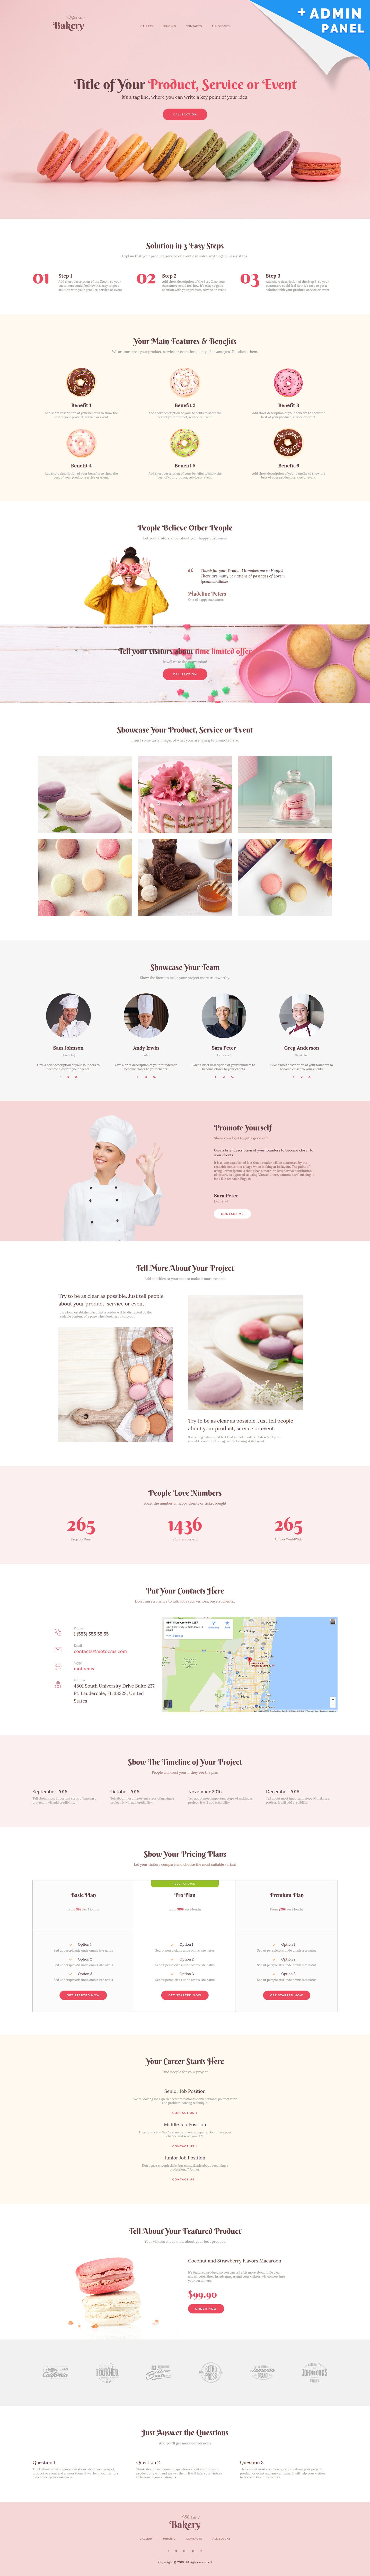 Bakery Responsive Landing Page Template